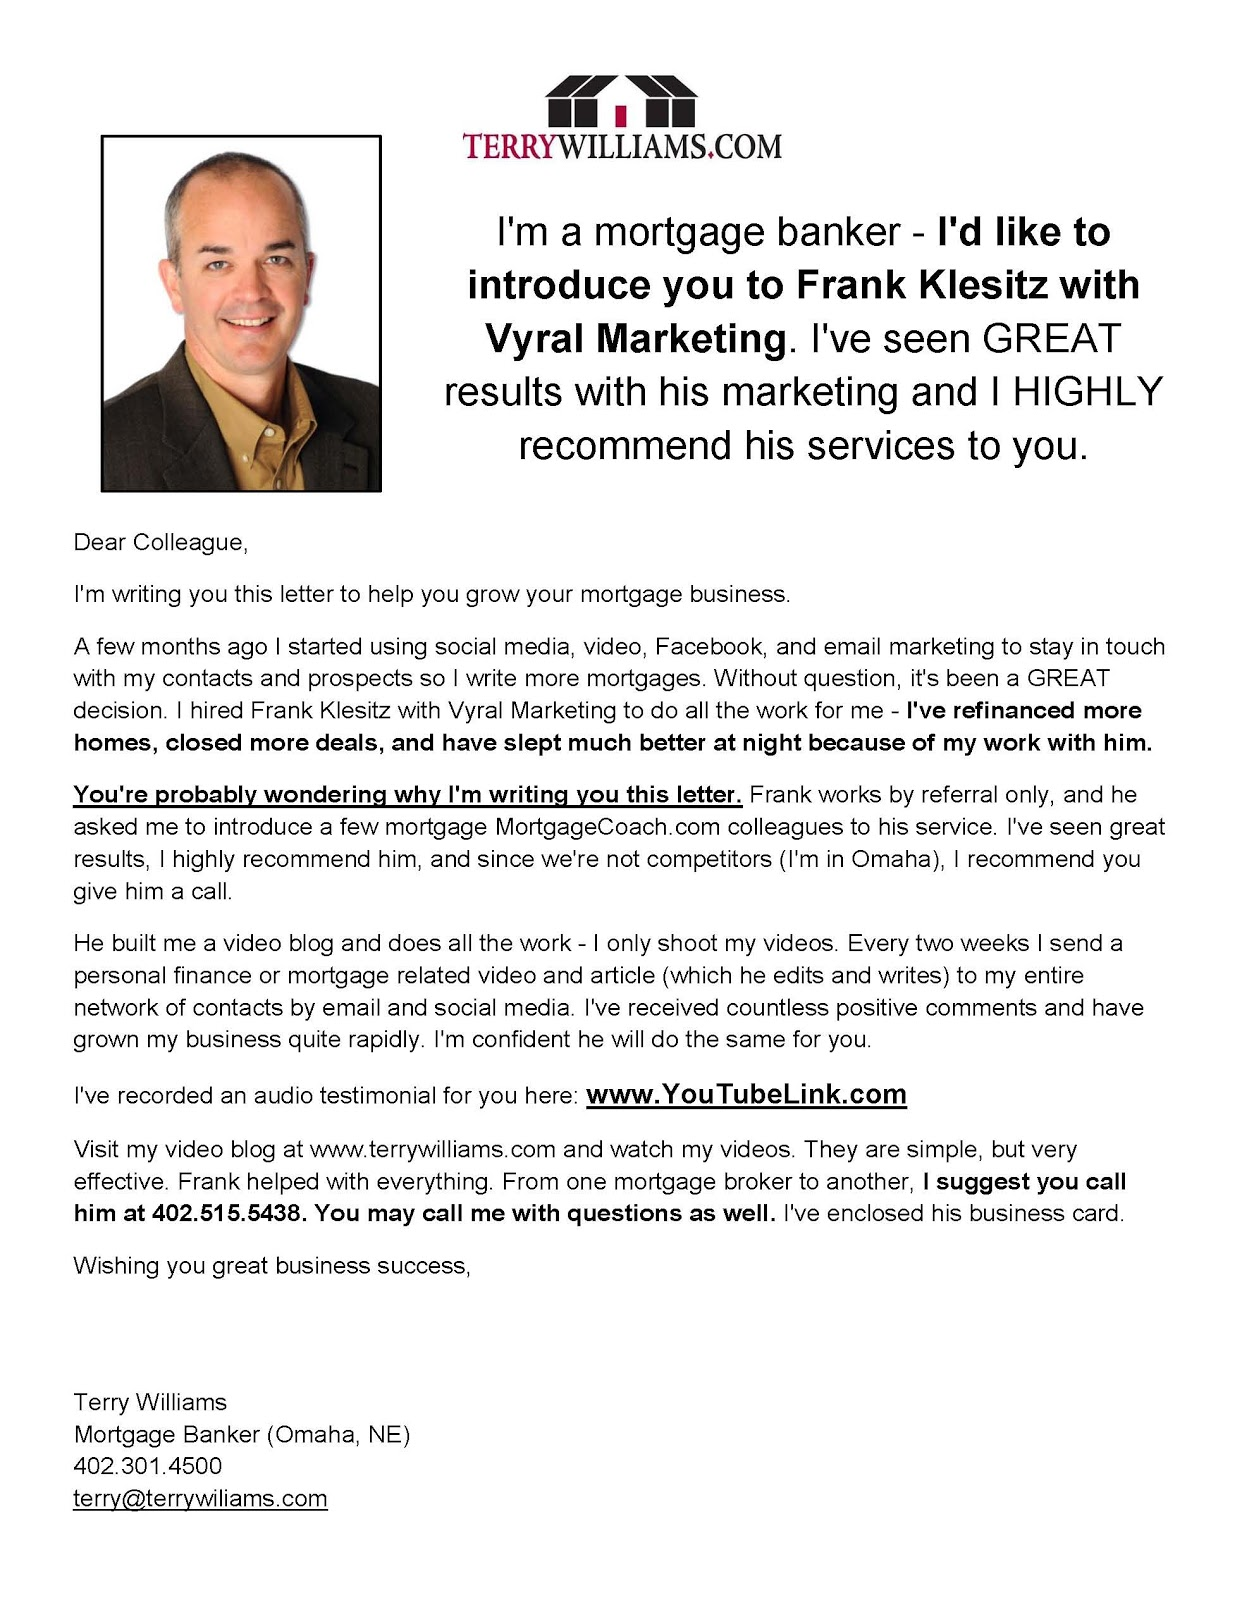 how to write a marketing letter to get clients example